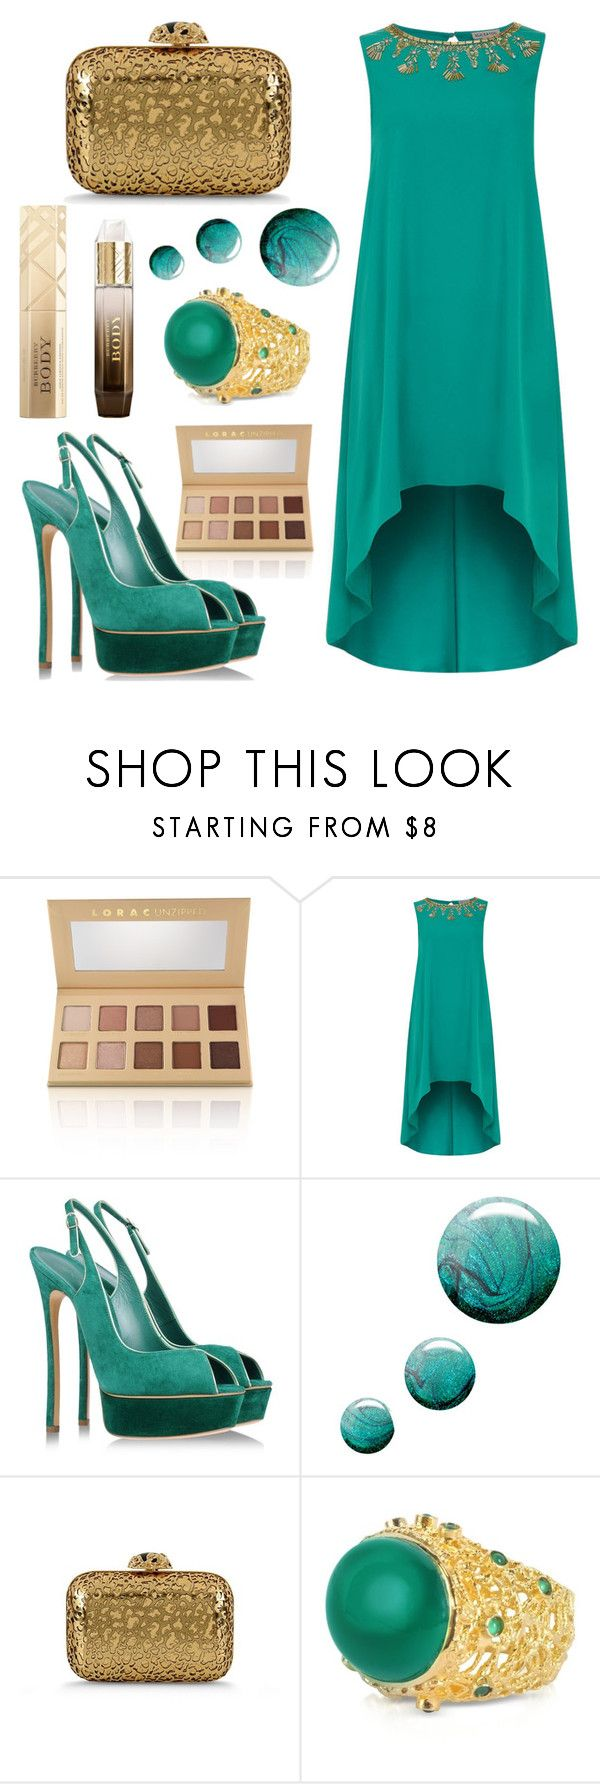 """""""1"""" by zinovyeva ❤ liked on Polyvore featuring LORAC, Alice & You, Casadei, Topshop, Sergio Rossi, Isharya and Burberry"""